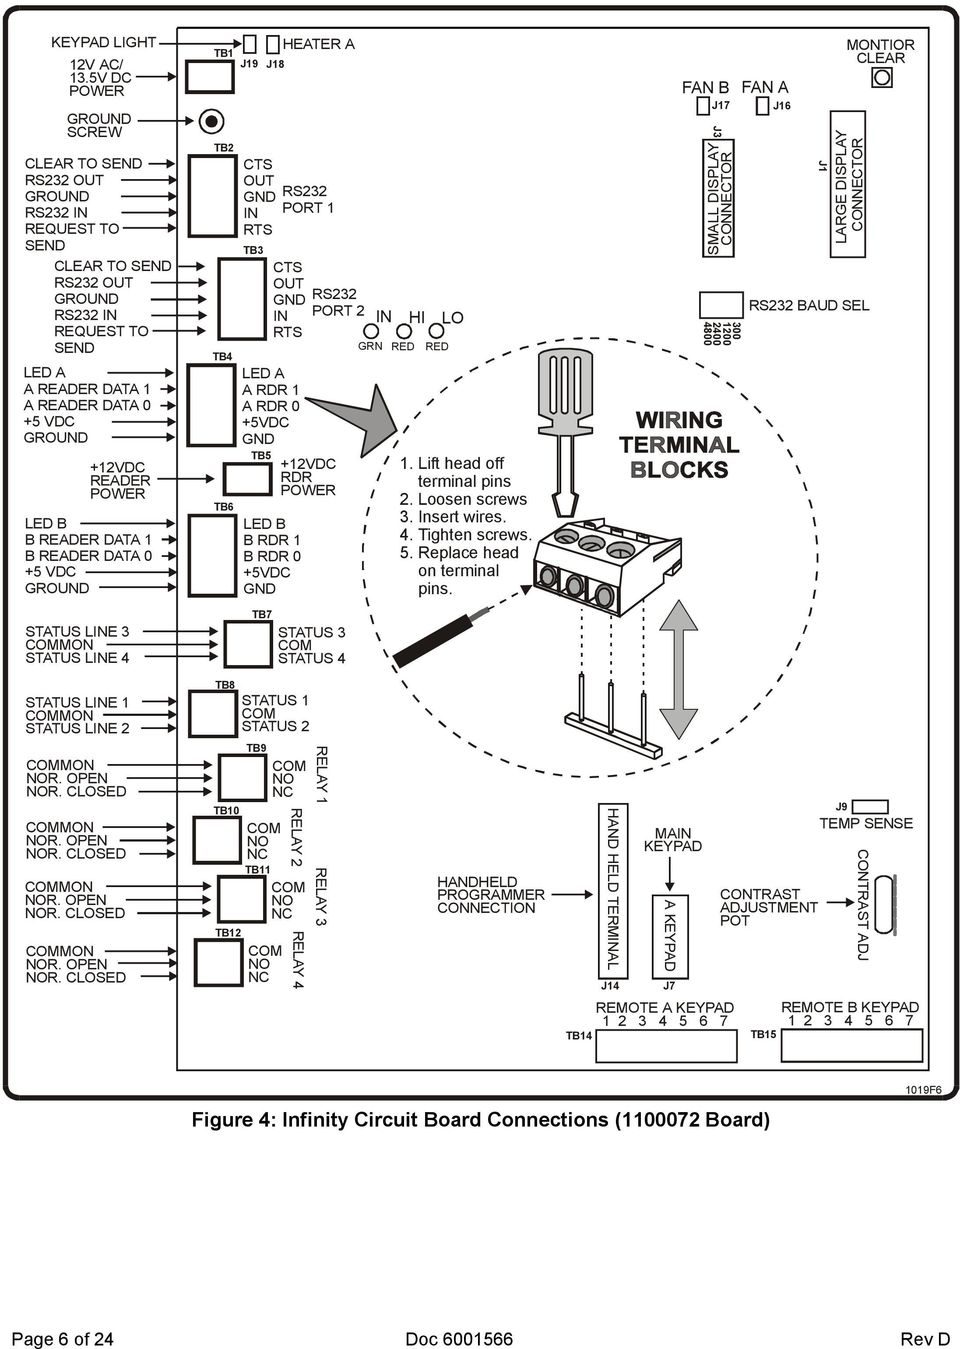 J18 Rs232 Schematic Detailed Wiring Diagrams Circuit Diagram Installation Instructions For All Infinity Pdf